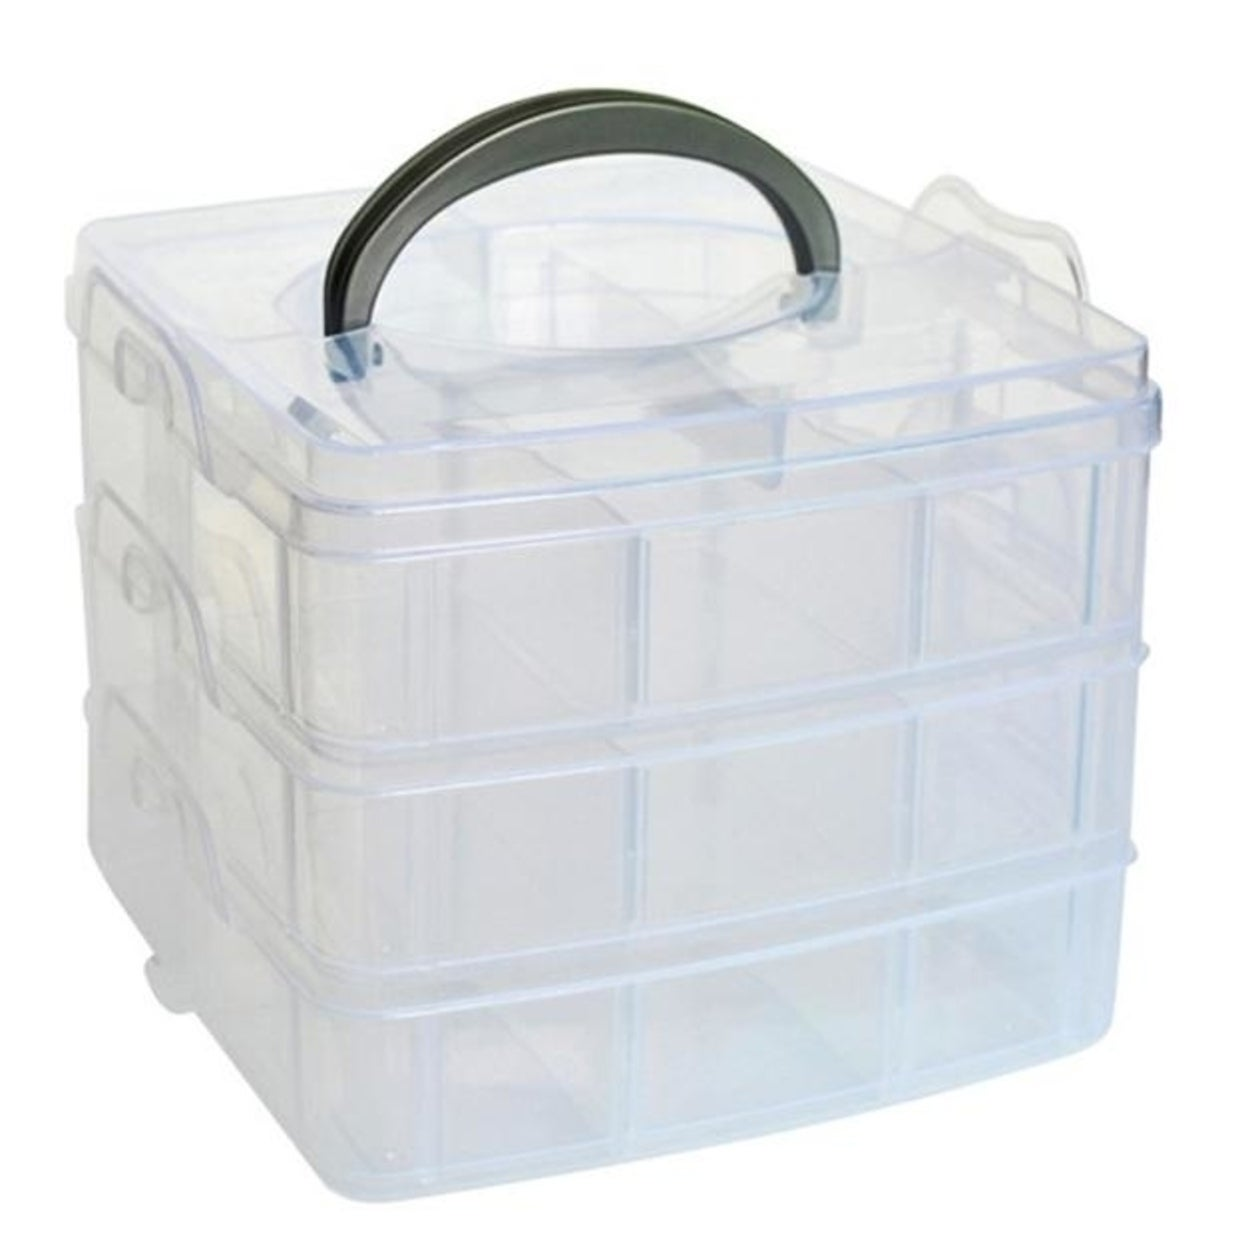 4.5x4.3x0.98 inches Rosmall Clear Box Jewelry DIY Things Organizer Storage Box Case Bead Makeup Container